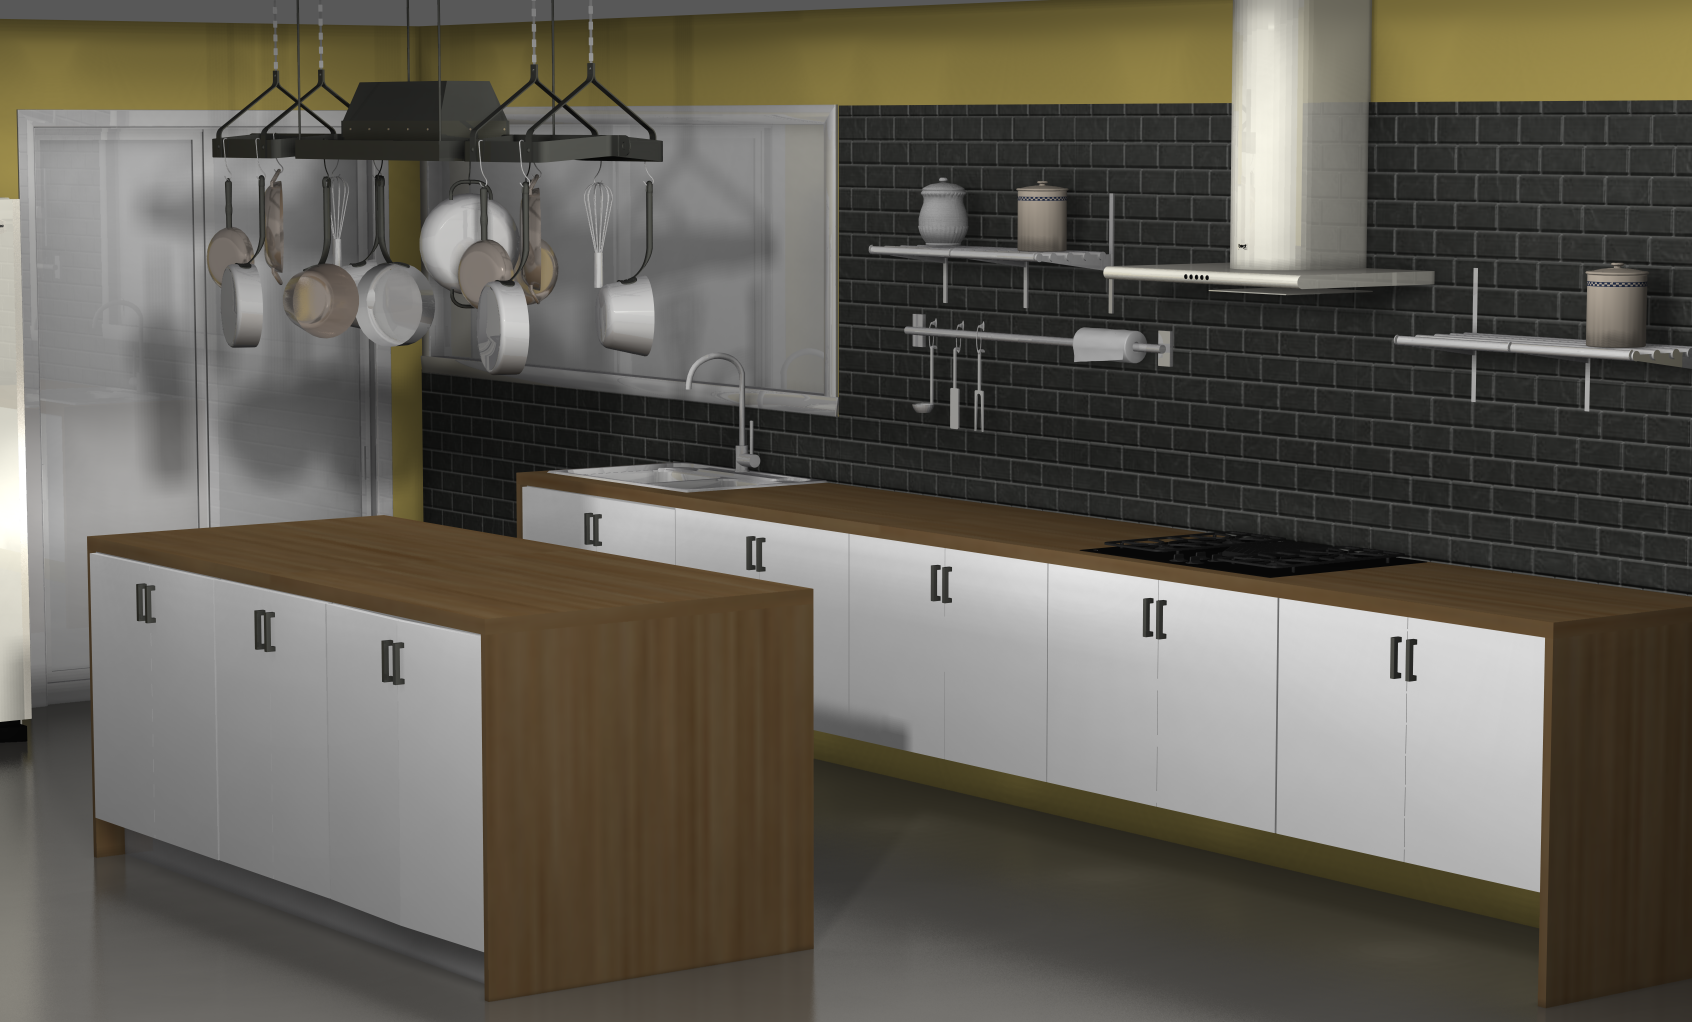 ikea kitchen design ideas. kitchen design ideas ikea with fewer wall cabinets gooseneck lamp white  subway tile and walls